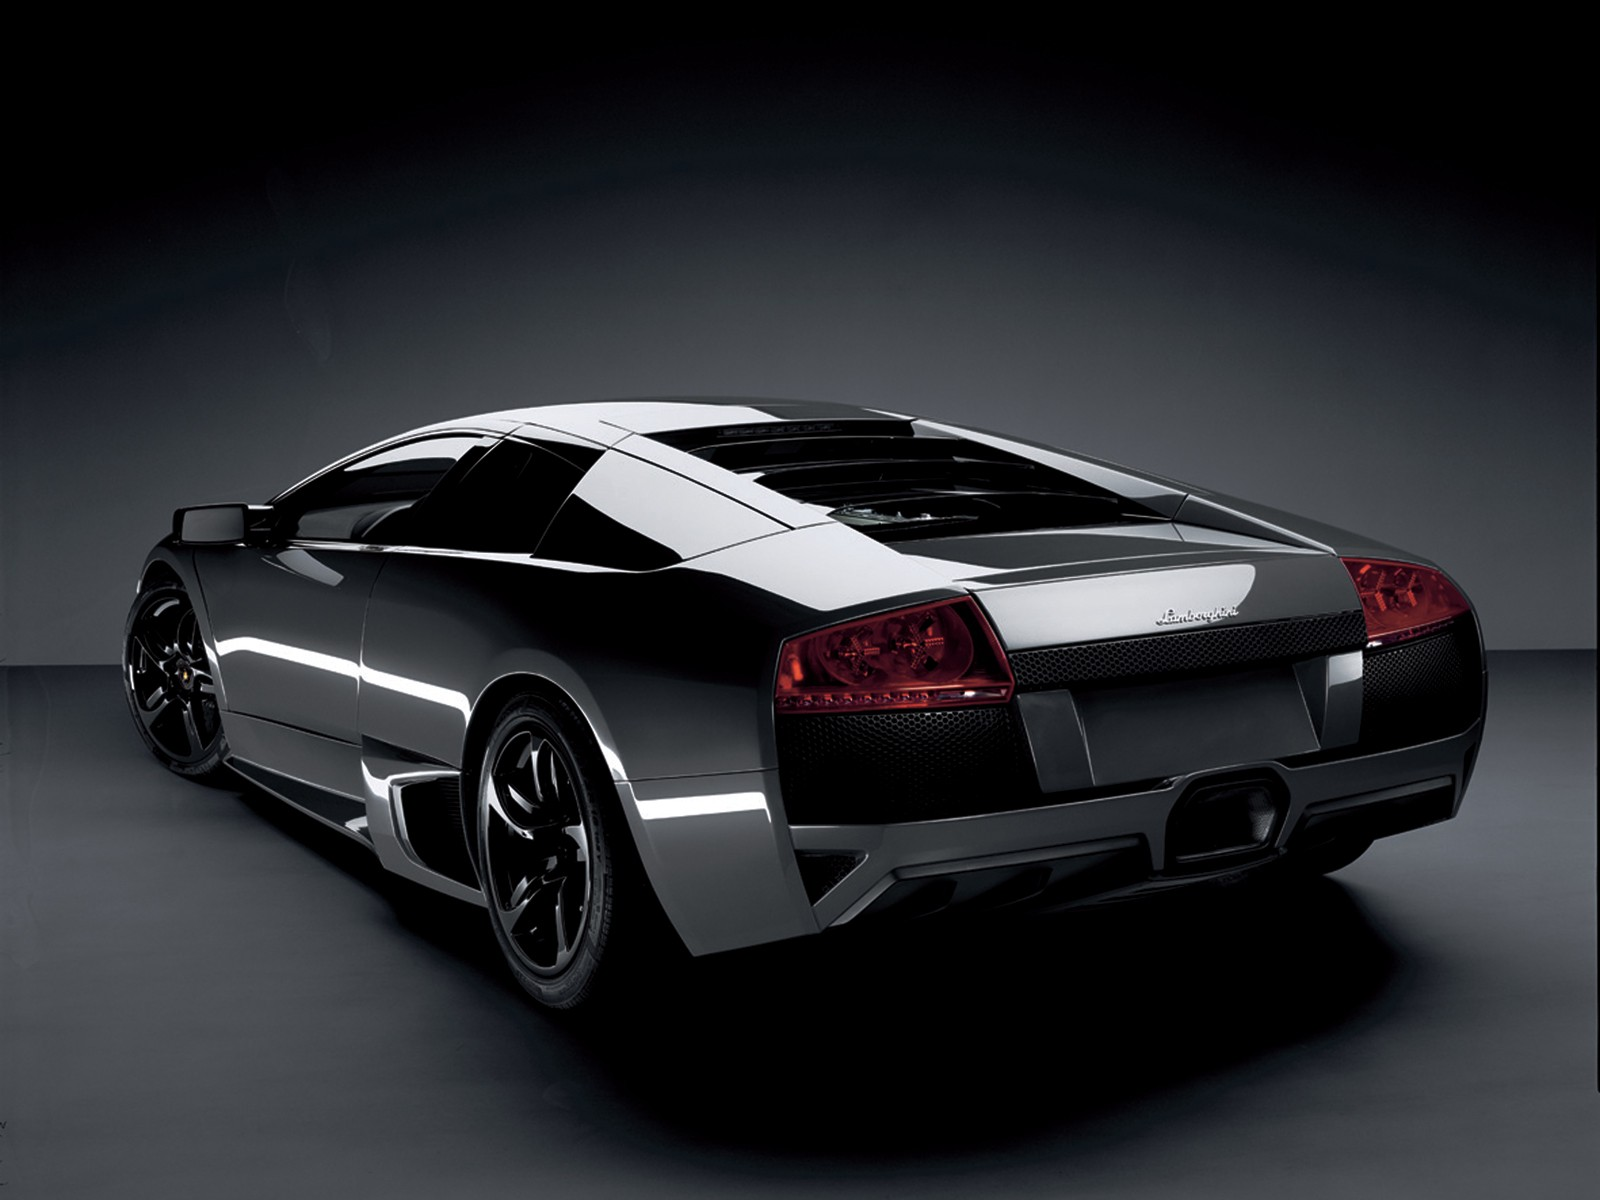 Best Cars in the World screenshot Hd Exotic Car Wallpapers